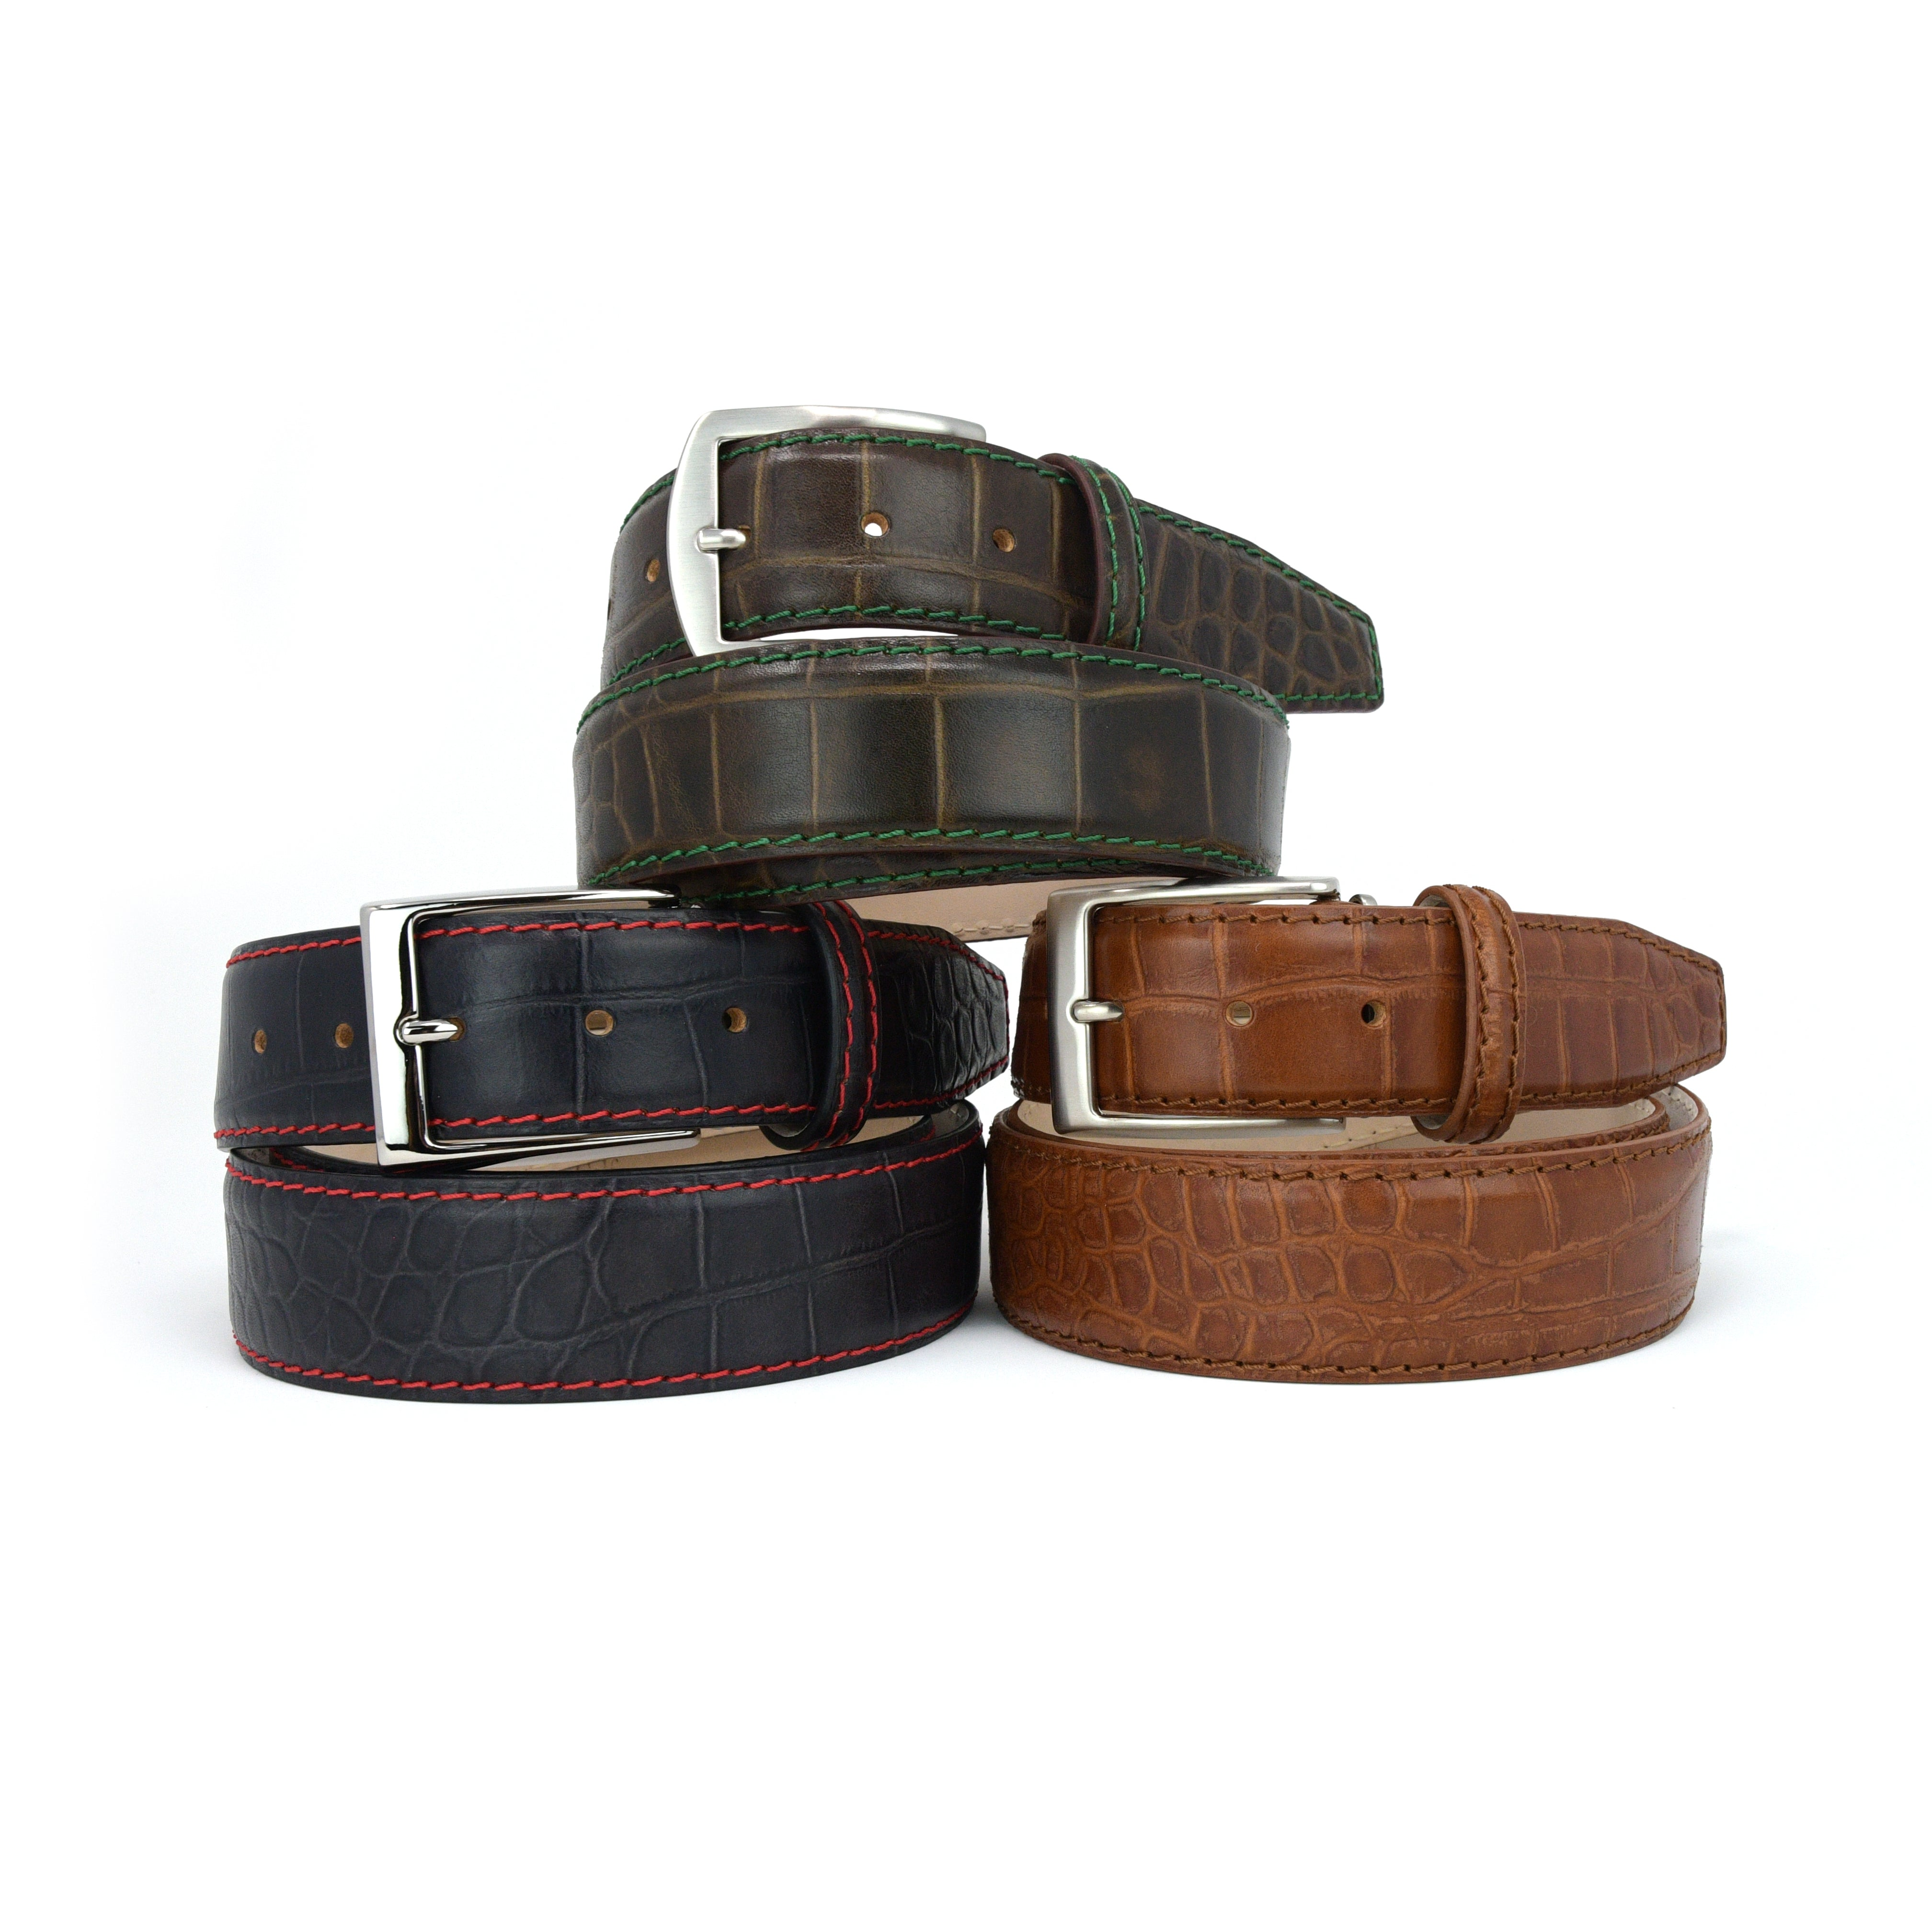 Matte Mock Gator Belt - Charcoal